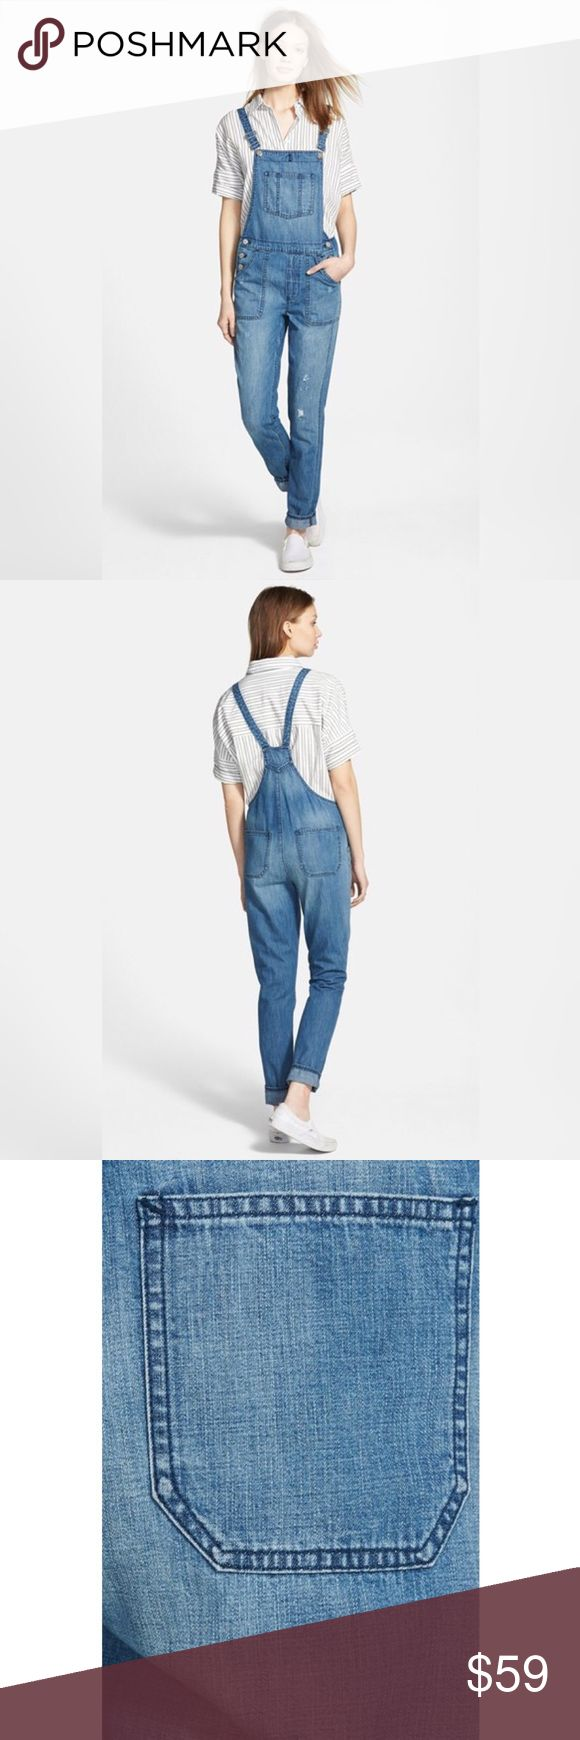 Madewell Park Overalls in Dixon Wash XS Classic bib-and-brace overalls woven from rigid denim recall classic pastoral style. Engraved silvertone hardware and light allover distressing enhance this heritage look. Adjustable straps with buckle closure. Three-button closure at sides. Four-pocket style, plus bib pocket. 100% cotton. Machine wash. By Madewell Madewell Pants Jumpsuits & Rompers